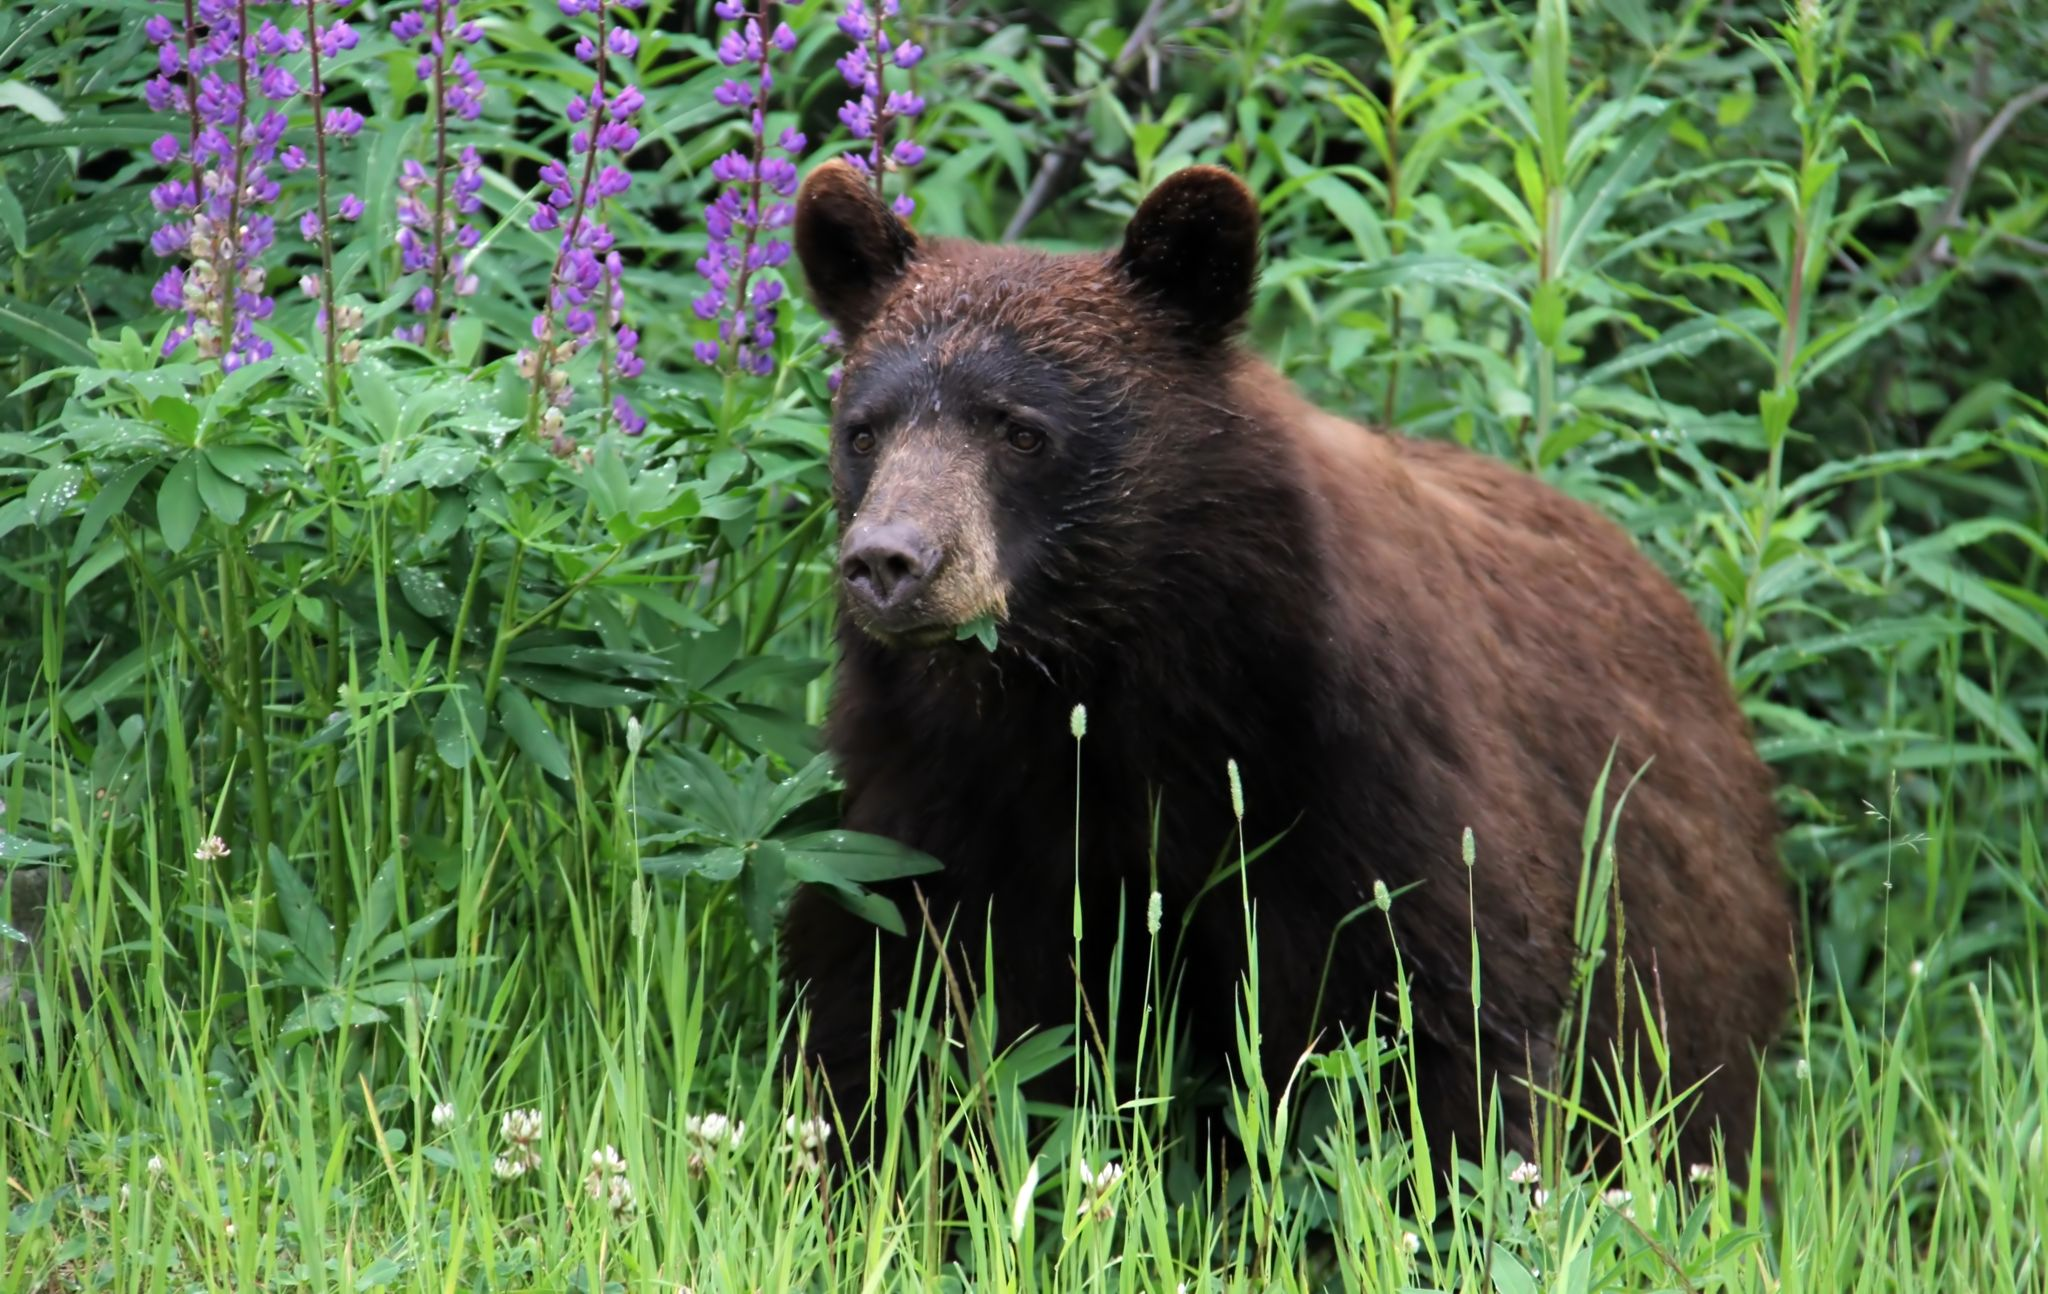 Safety tips for campers: wildlife: Black Bear A black bear in the wilderness of Canada eating green leaves.